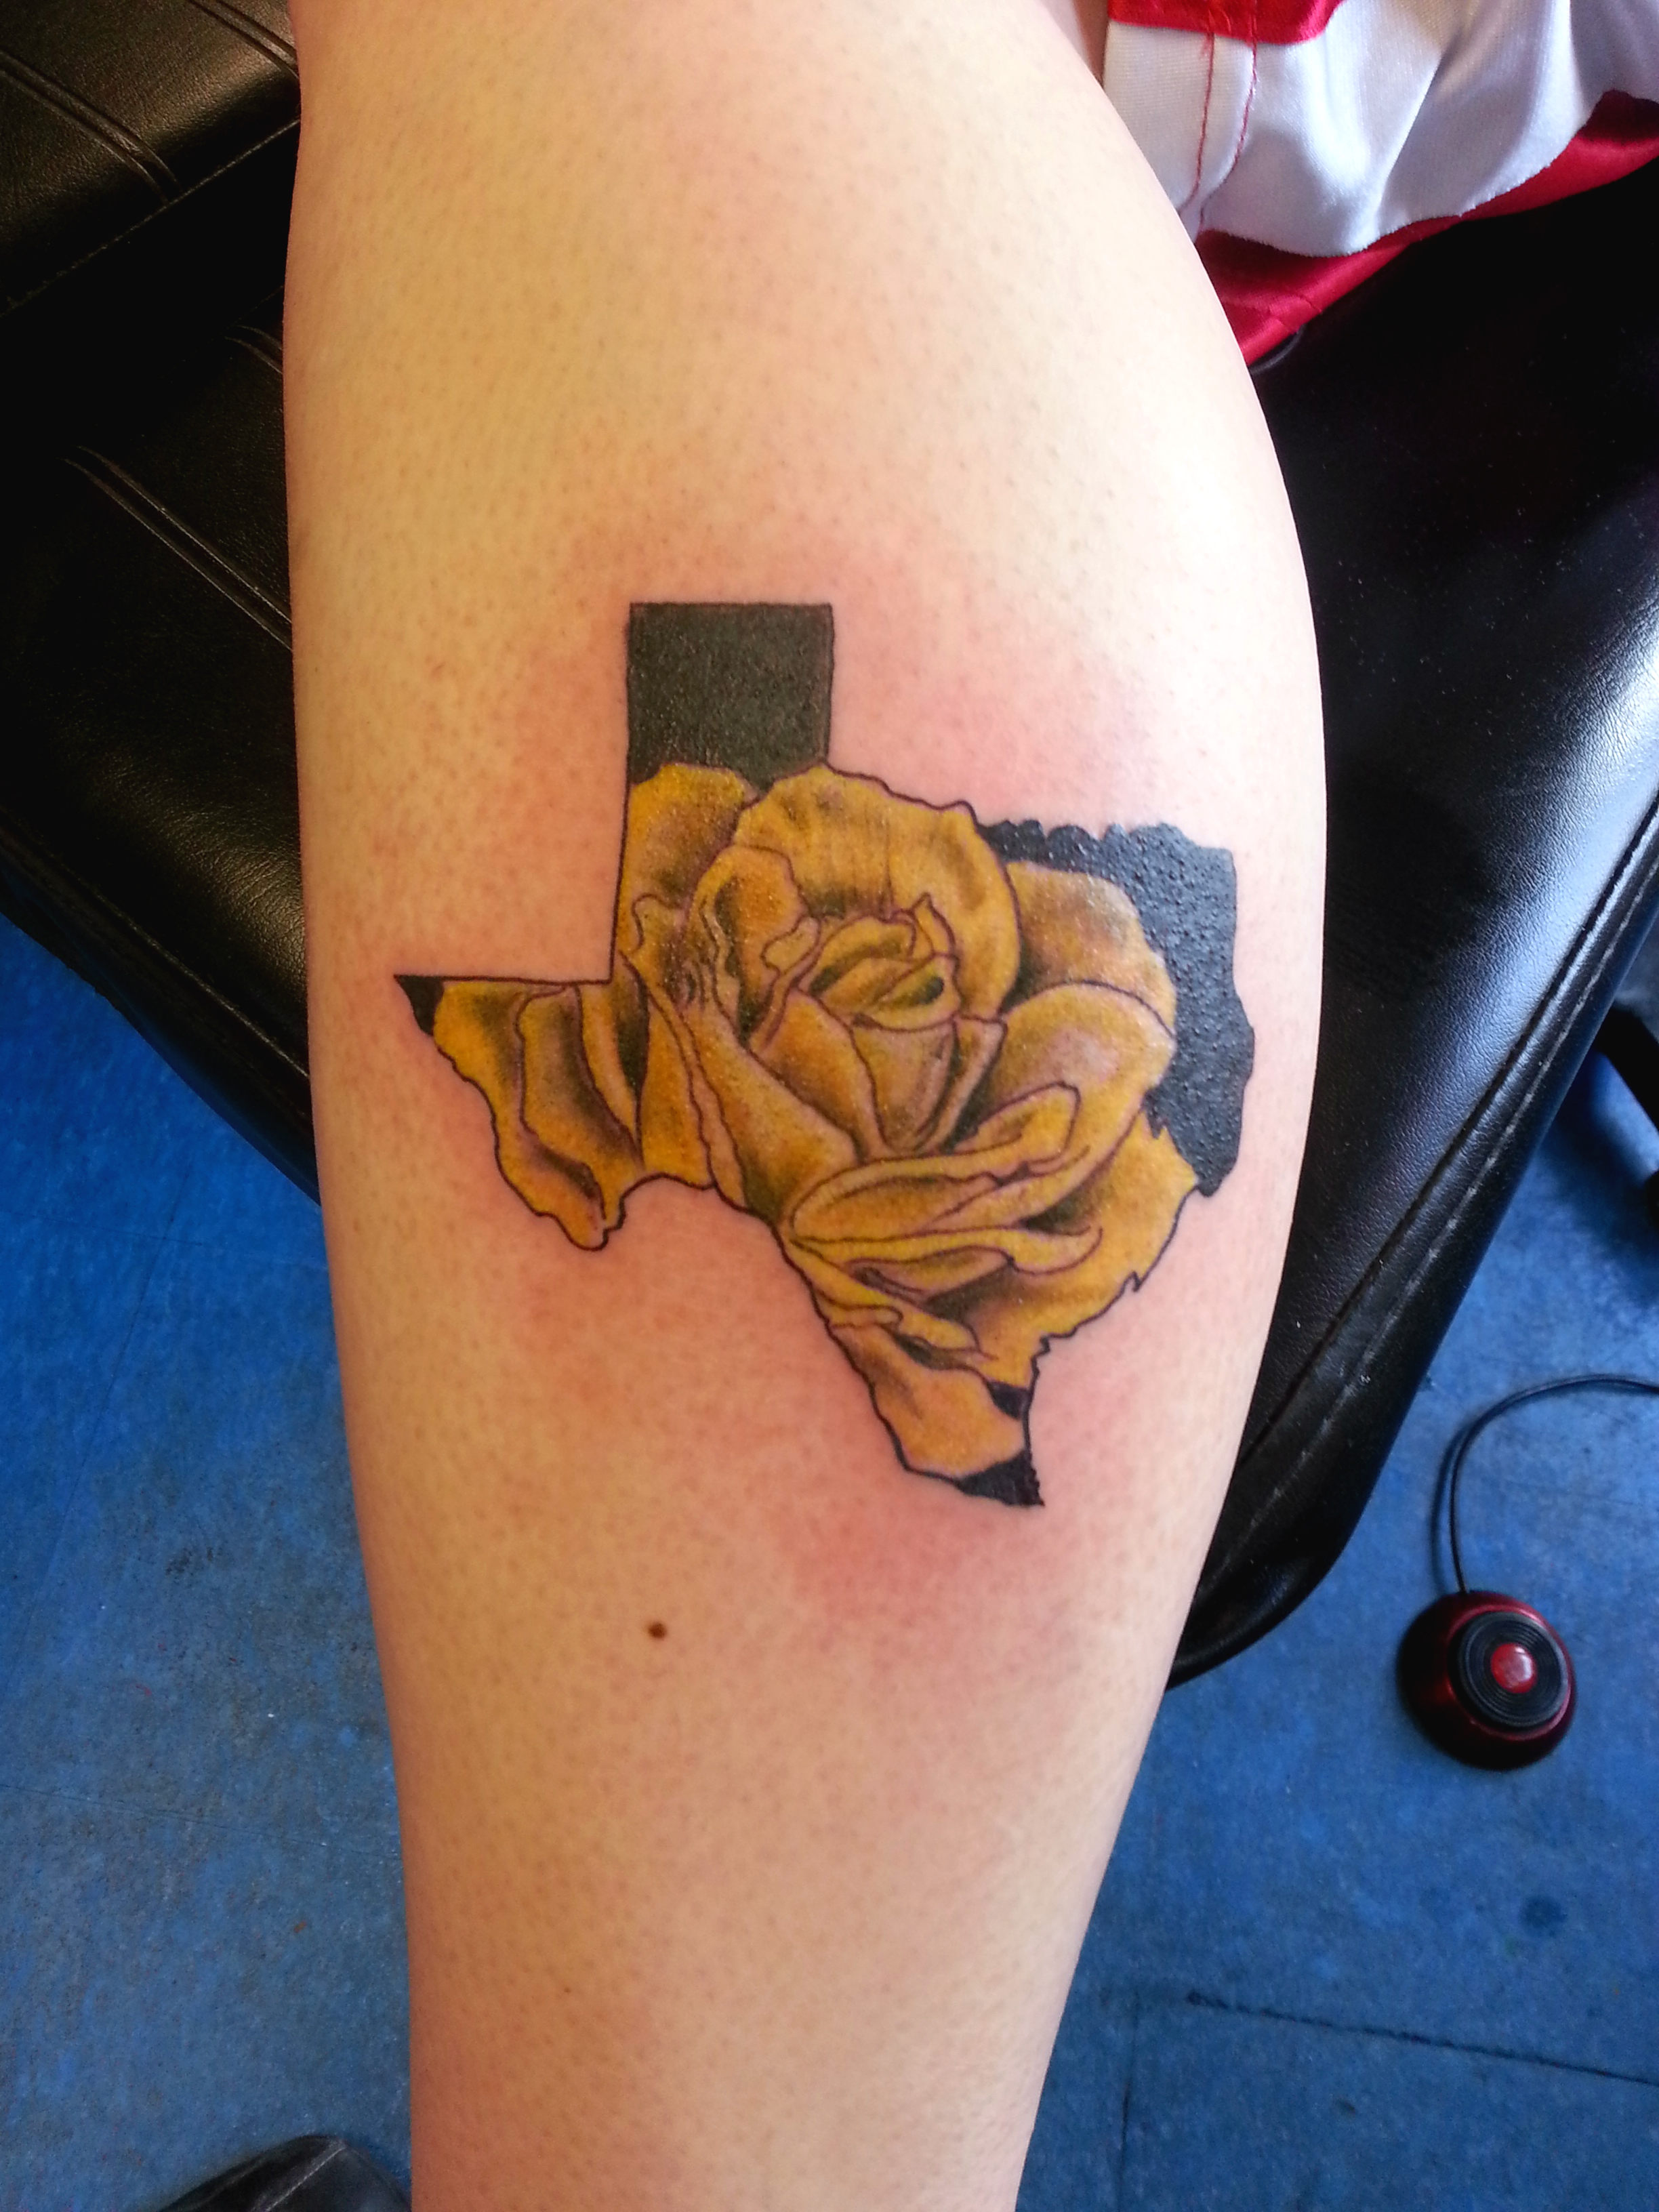 A yellow rose in Texas - Tattoo.com